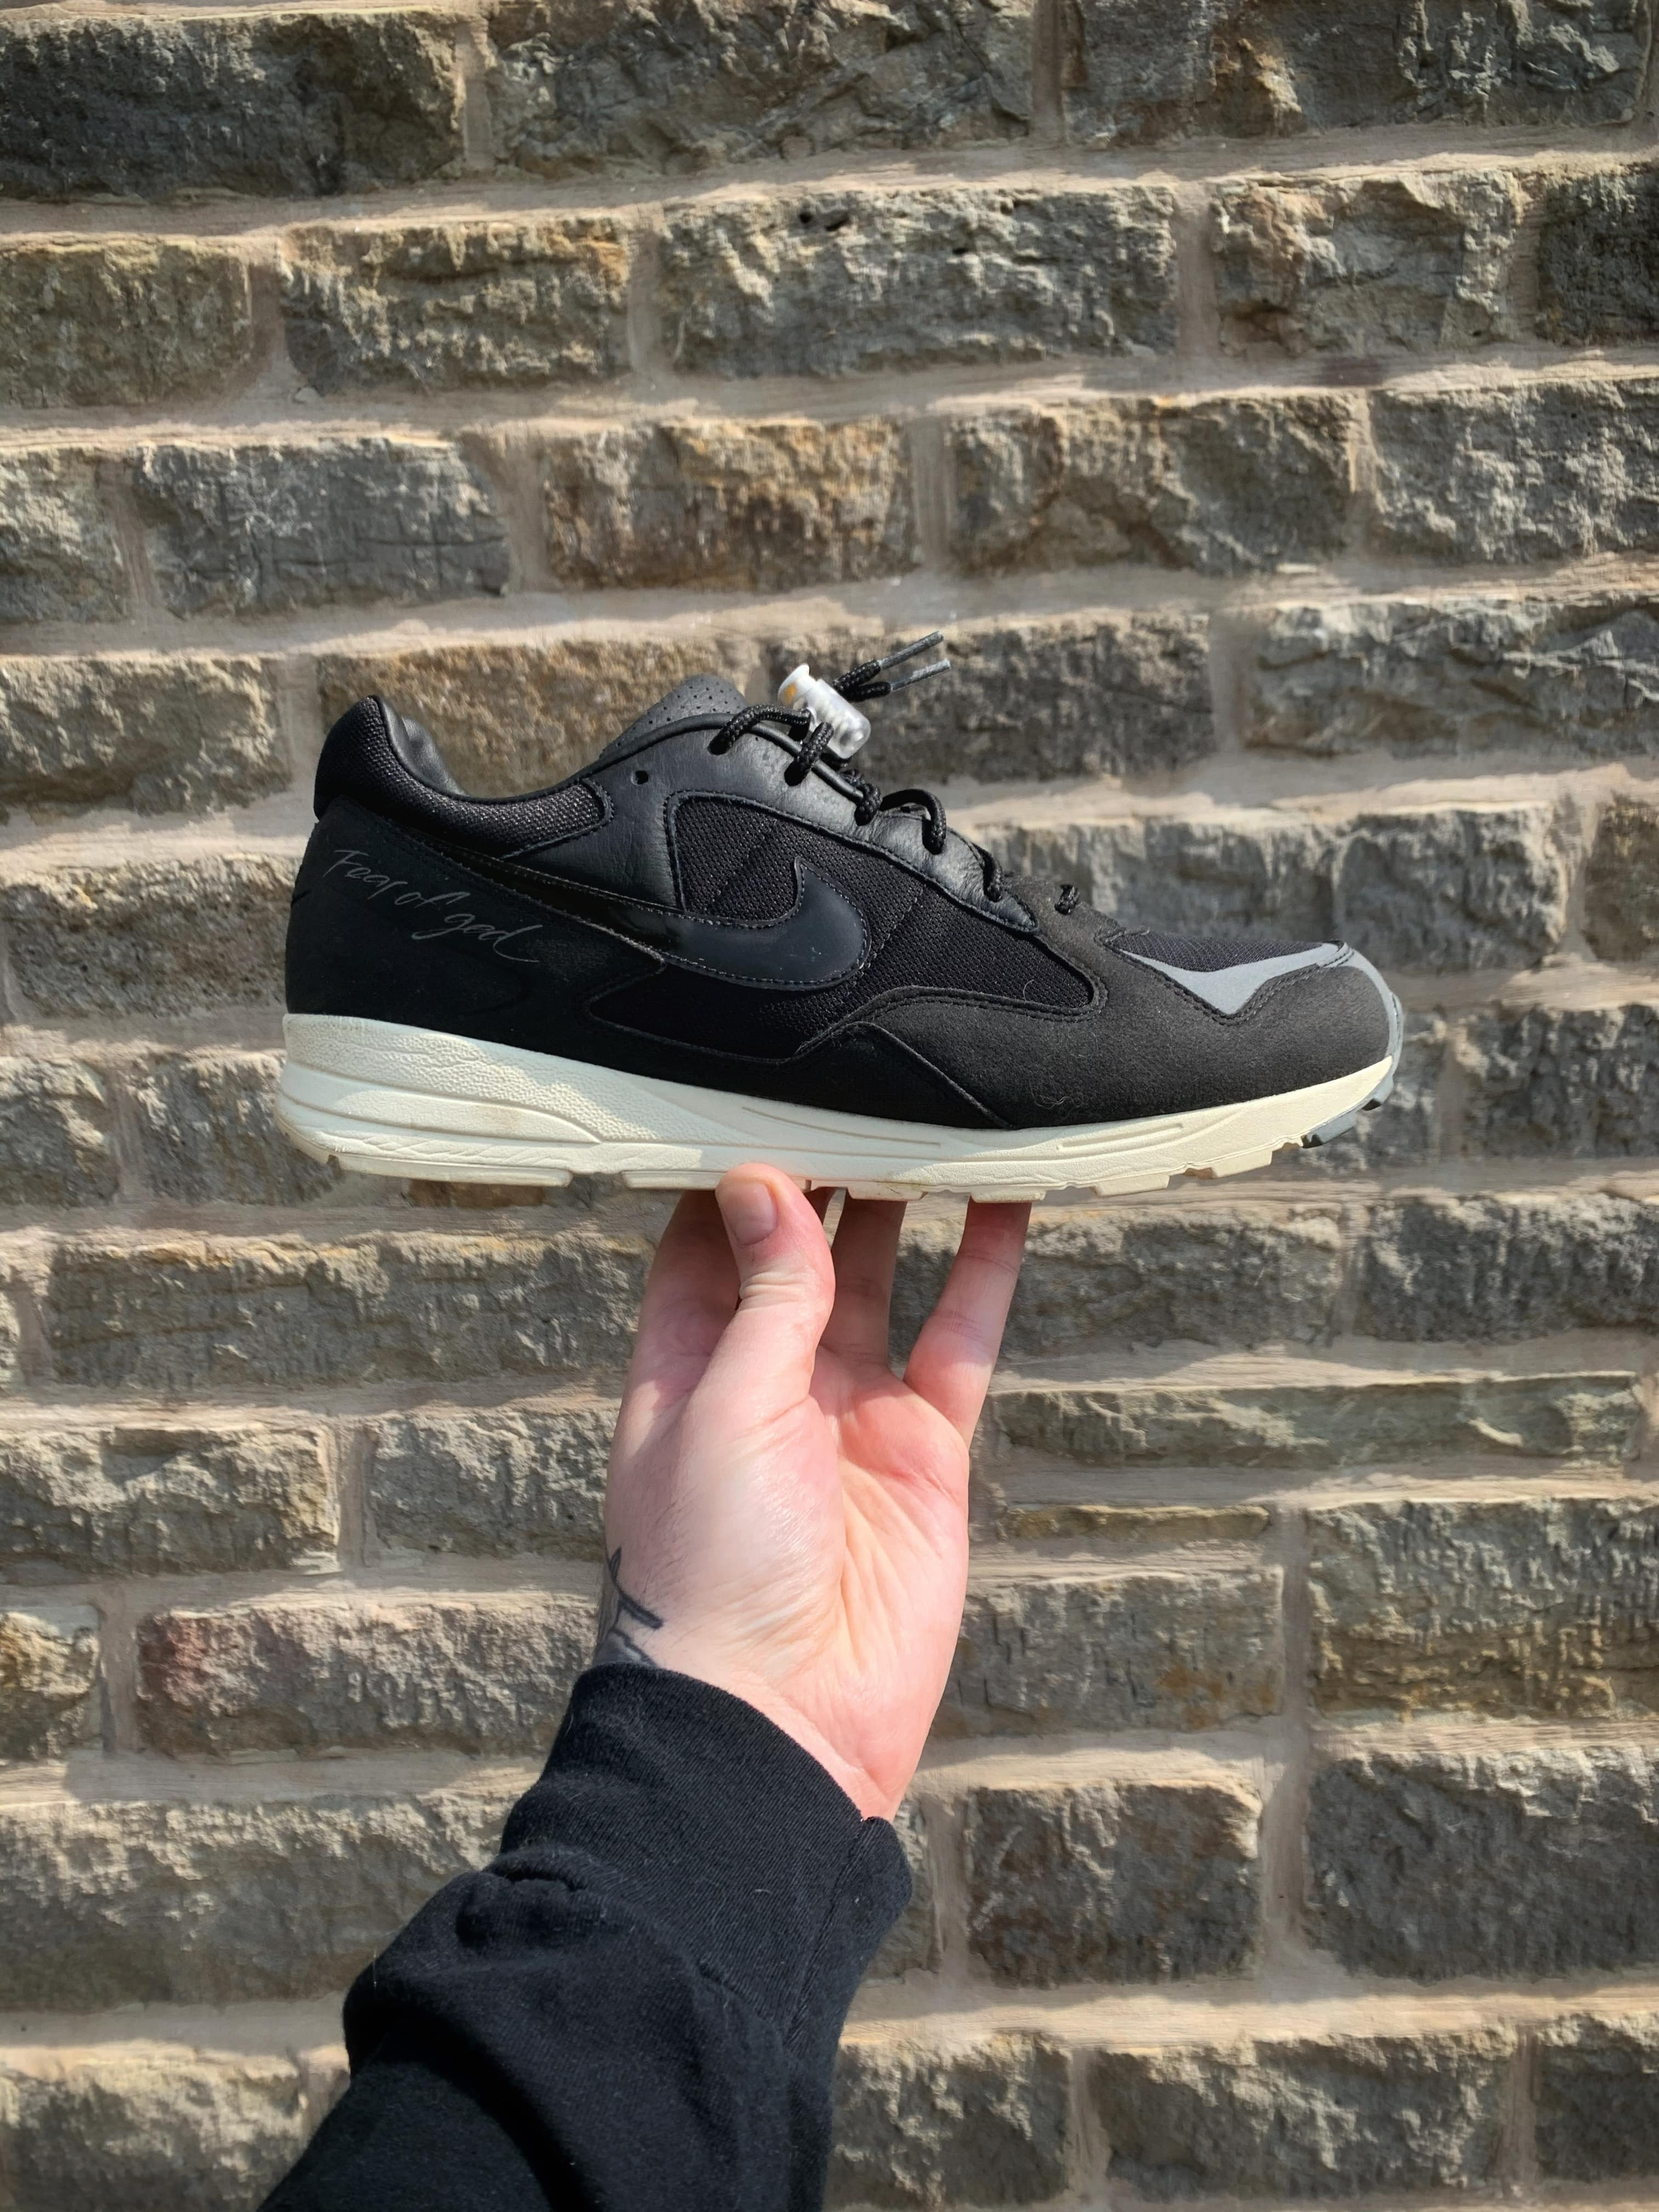 Nike x Fear Of God Skylon II - 2019